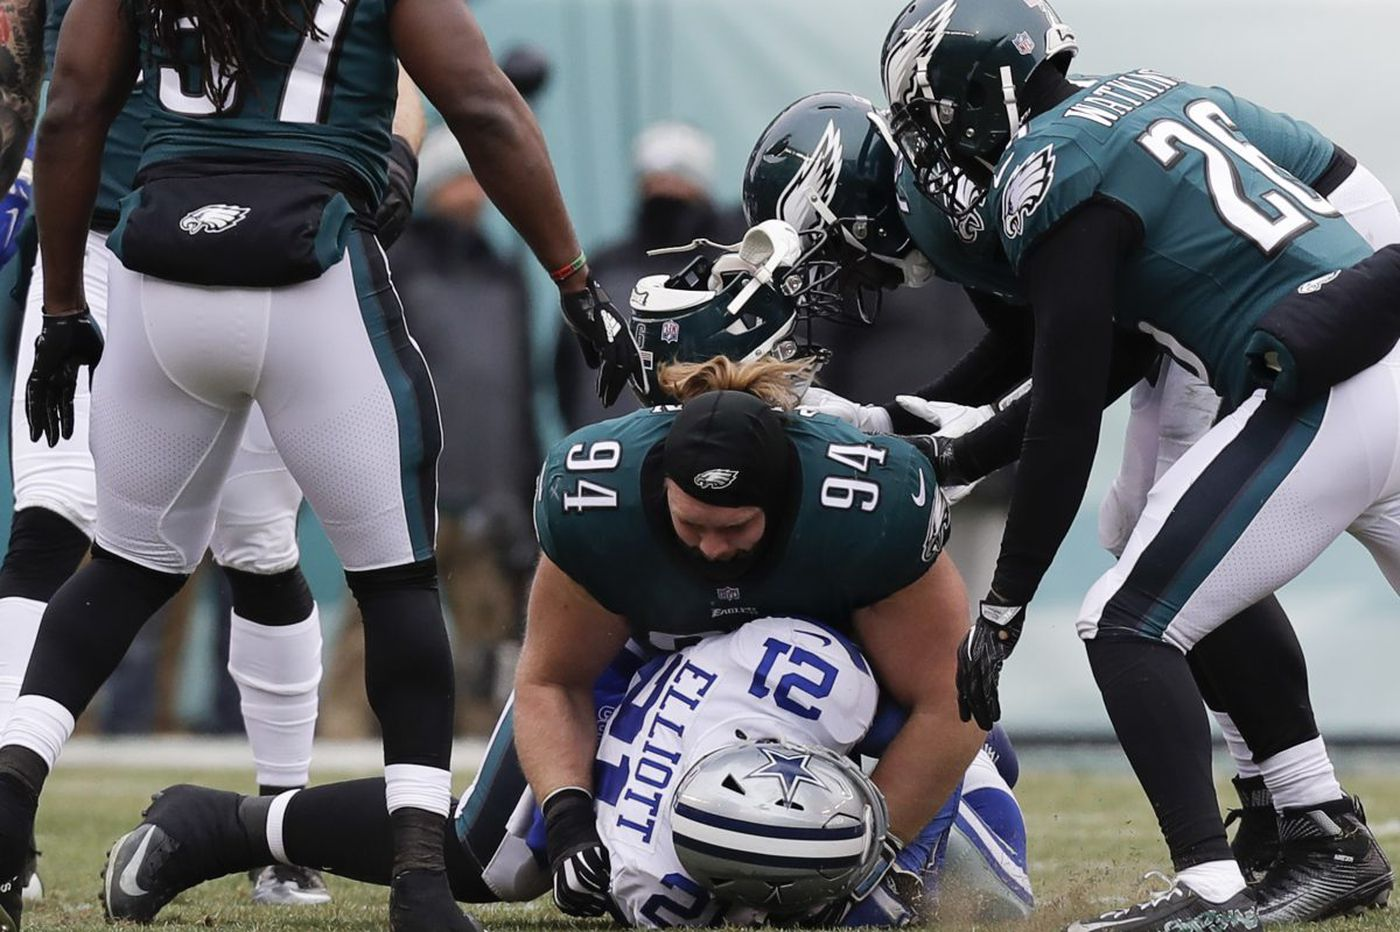 With offense struggling, Eagles' defense now must lead the way